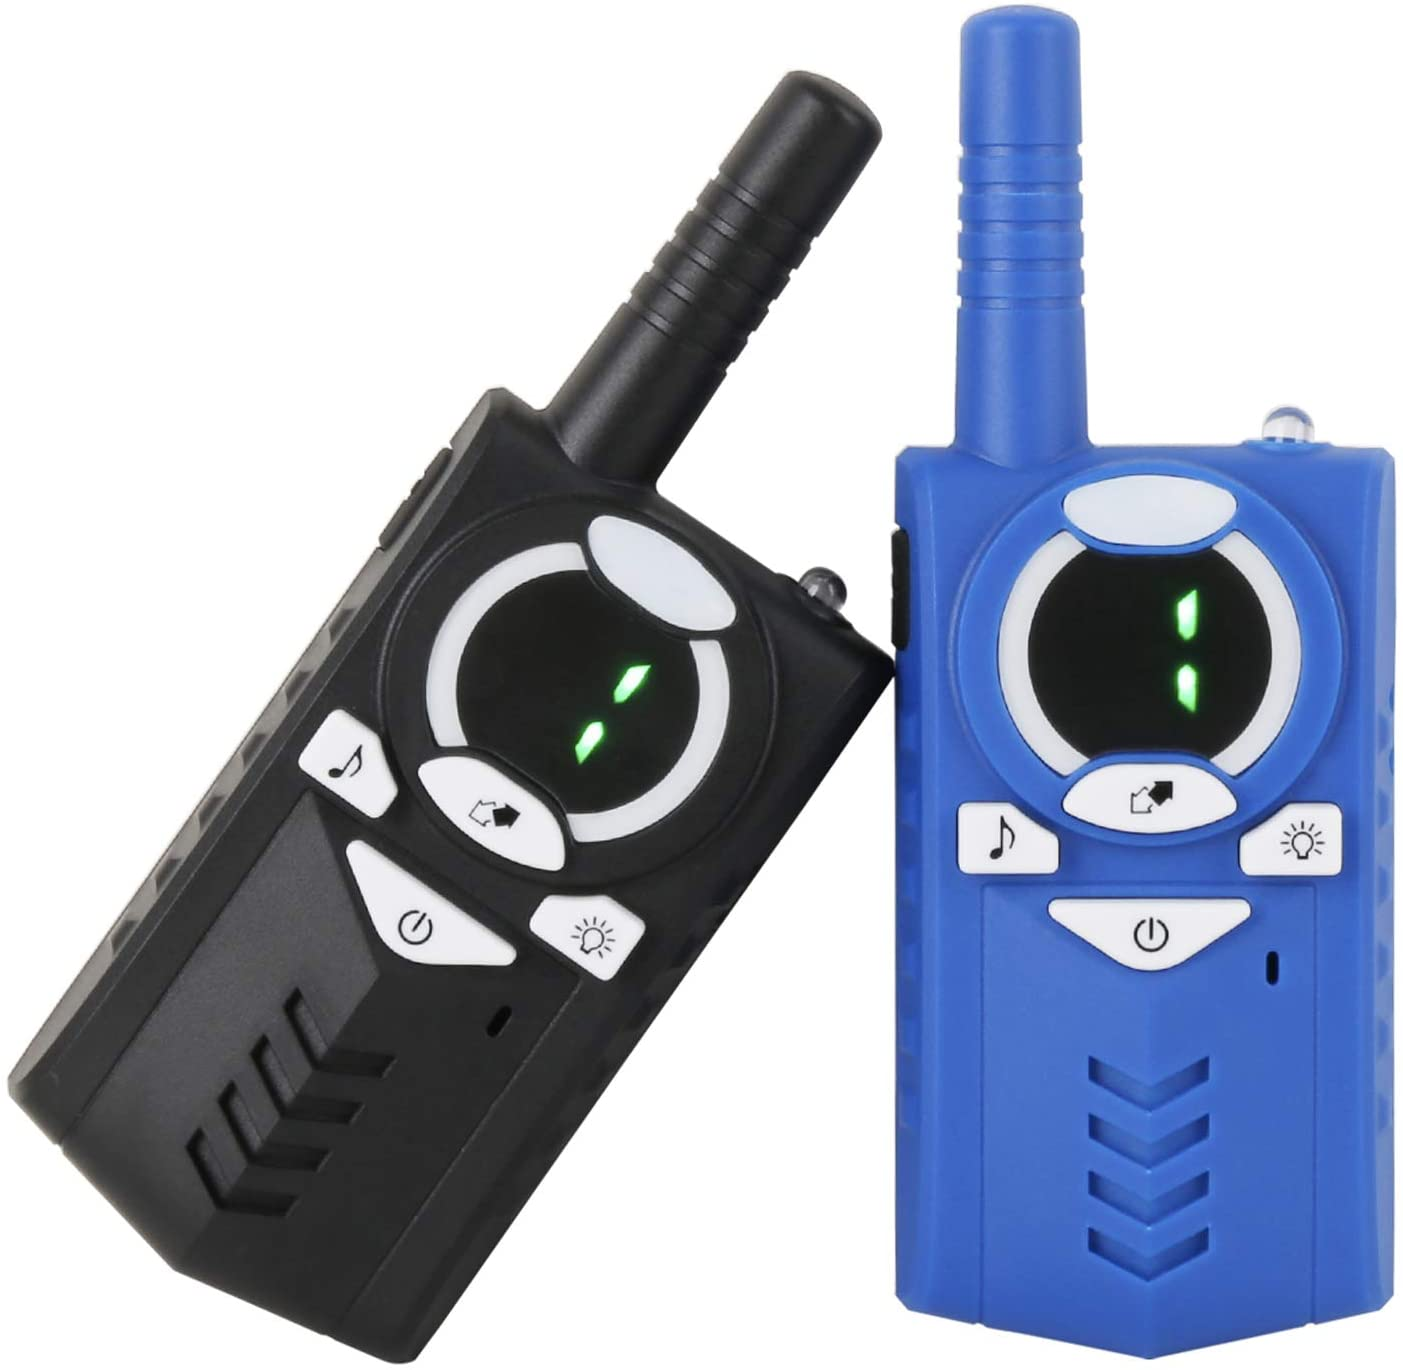 ROBUD Walkie Talkies for Kids, 3 Miles Long Range Two Way Radios Rechargeable, Best Toys Gifts for Kids Boys & Girls Age 3 4 5 6 7 8 9 10 Years Old and Up (2 Pack)